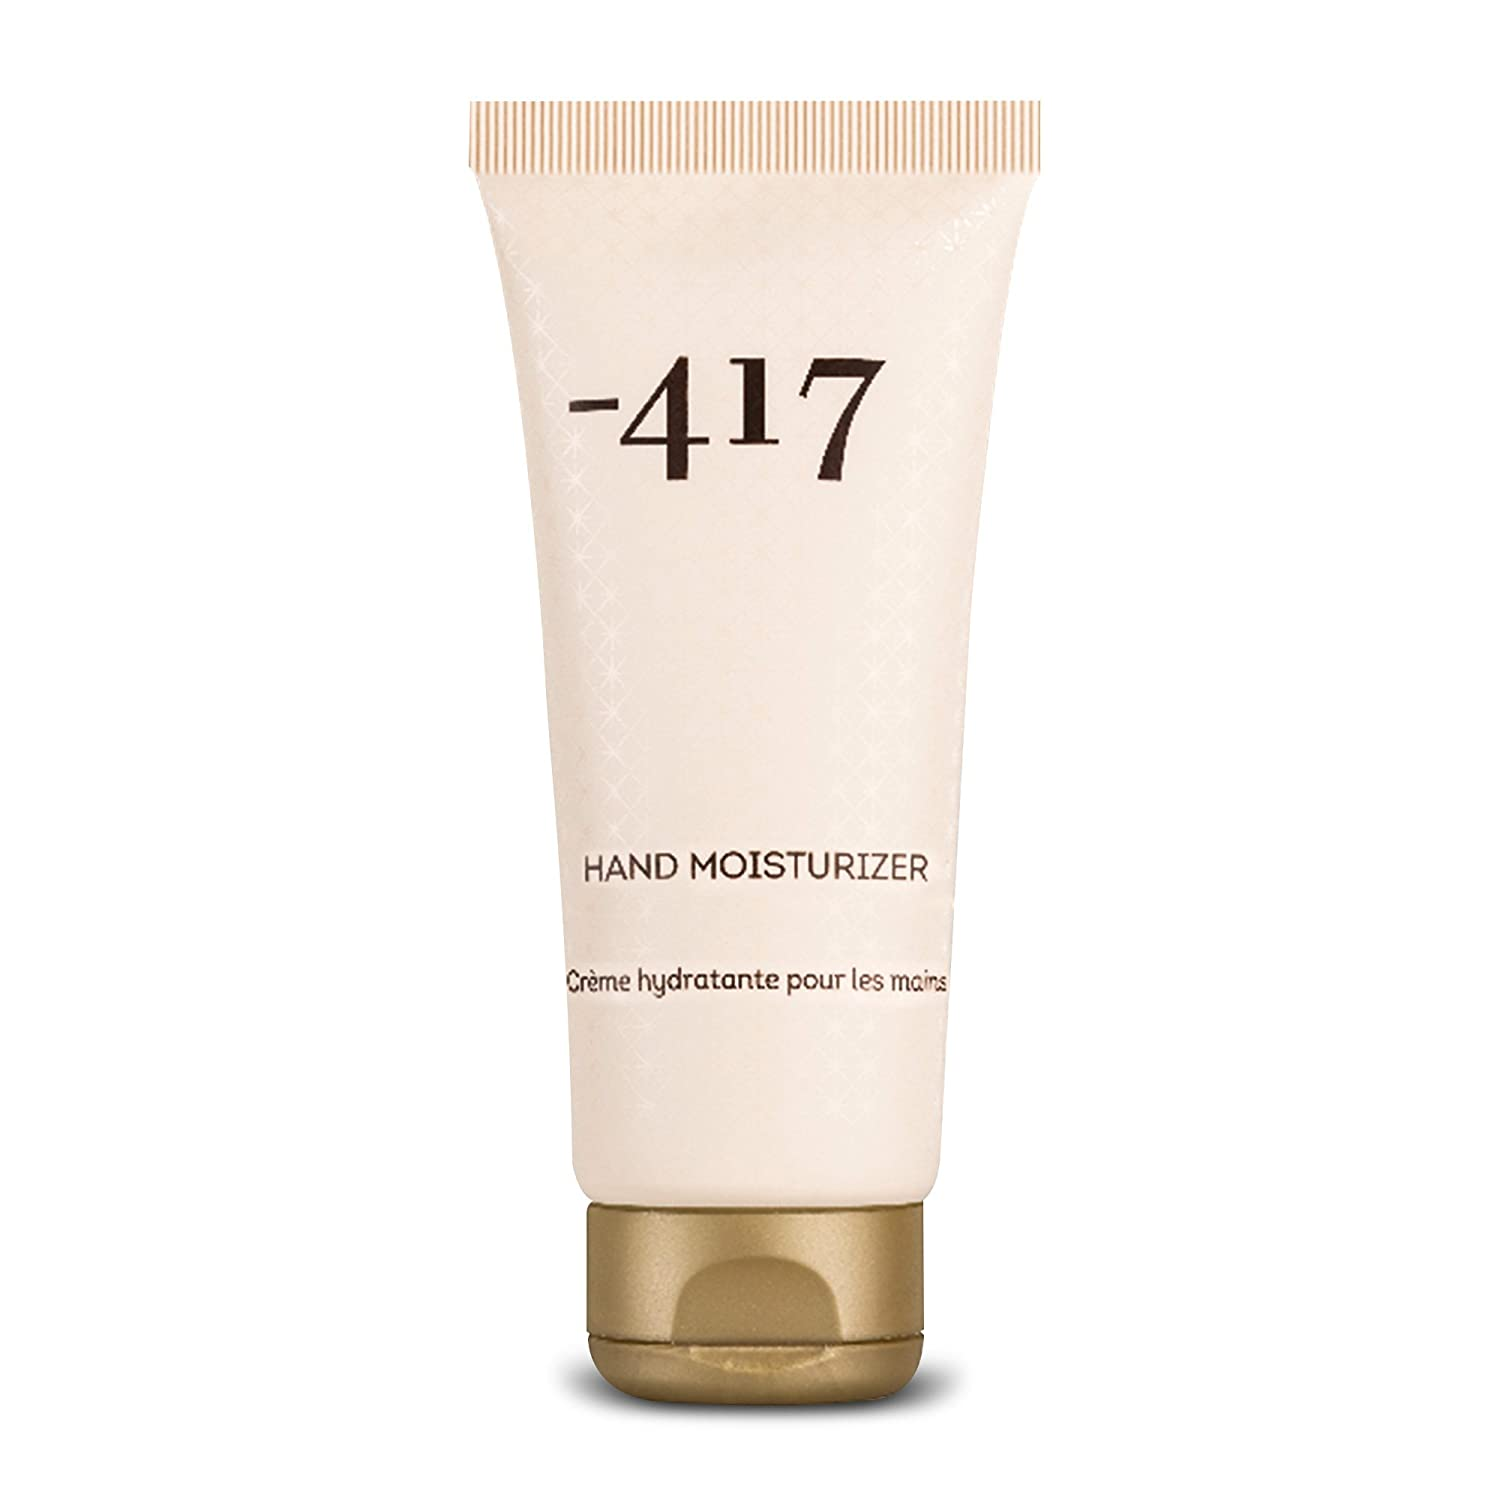 417 Anti Aging Hand Cream For Dry, Cracked Skin & Working Hands features Essential Vitamins & Oils From The Dead-Sea, Say Yes To Silky Smooth Hands With Our Hand Moisturizer!